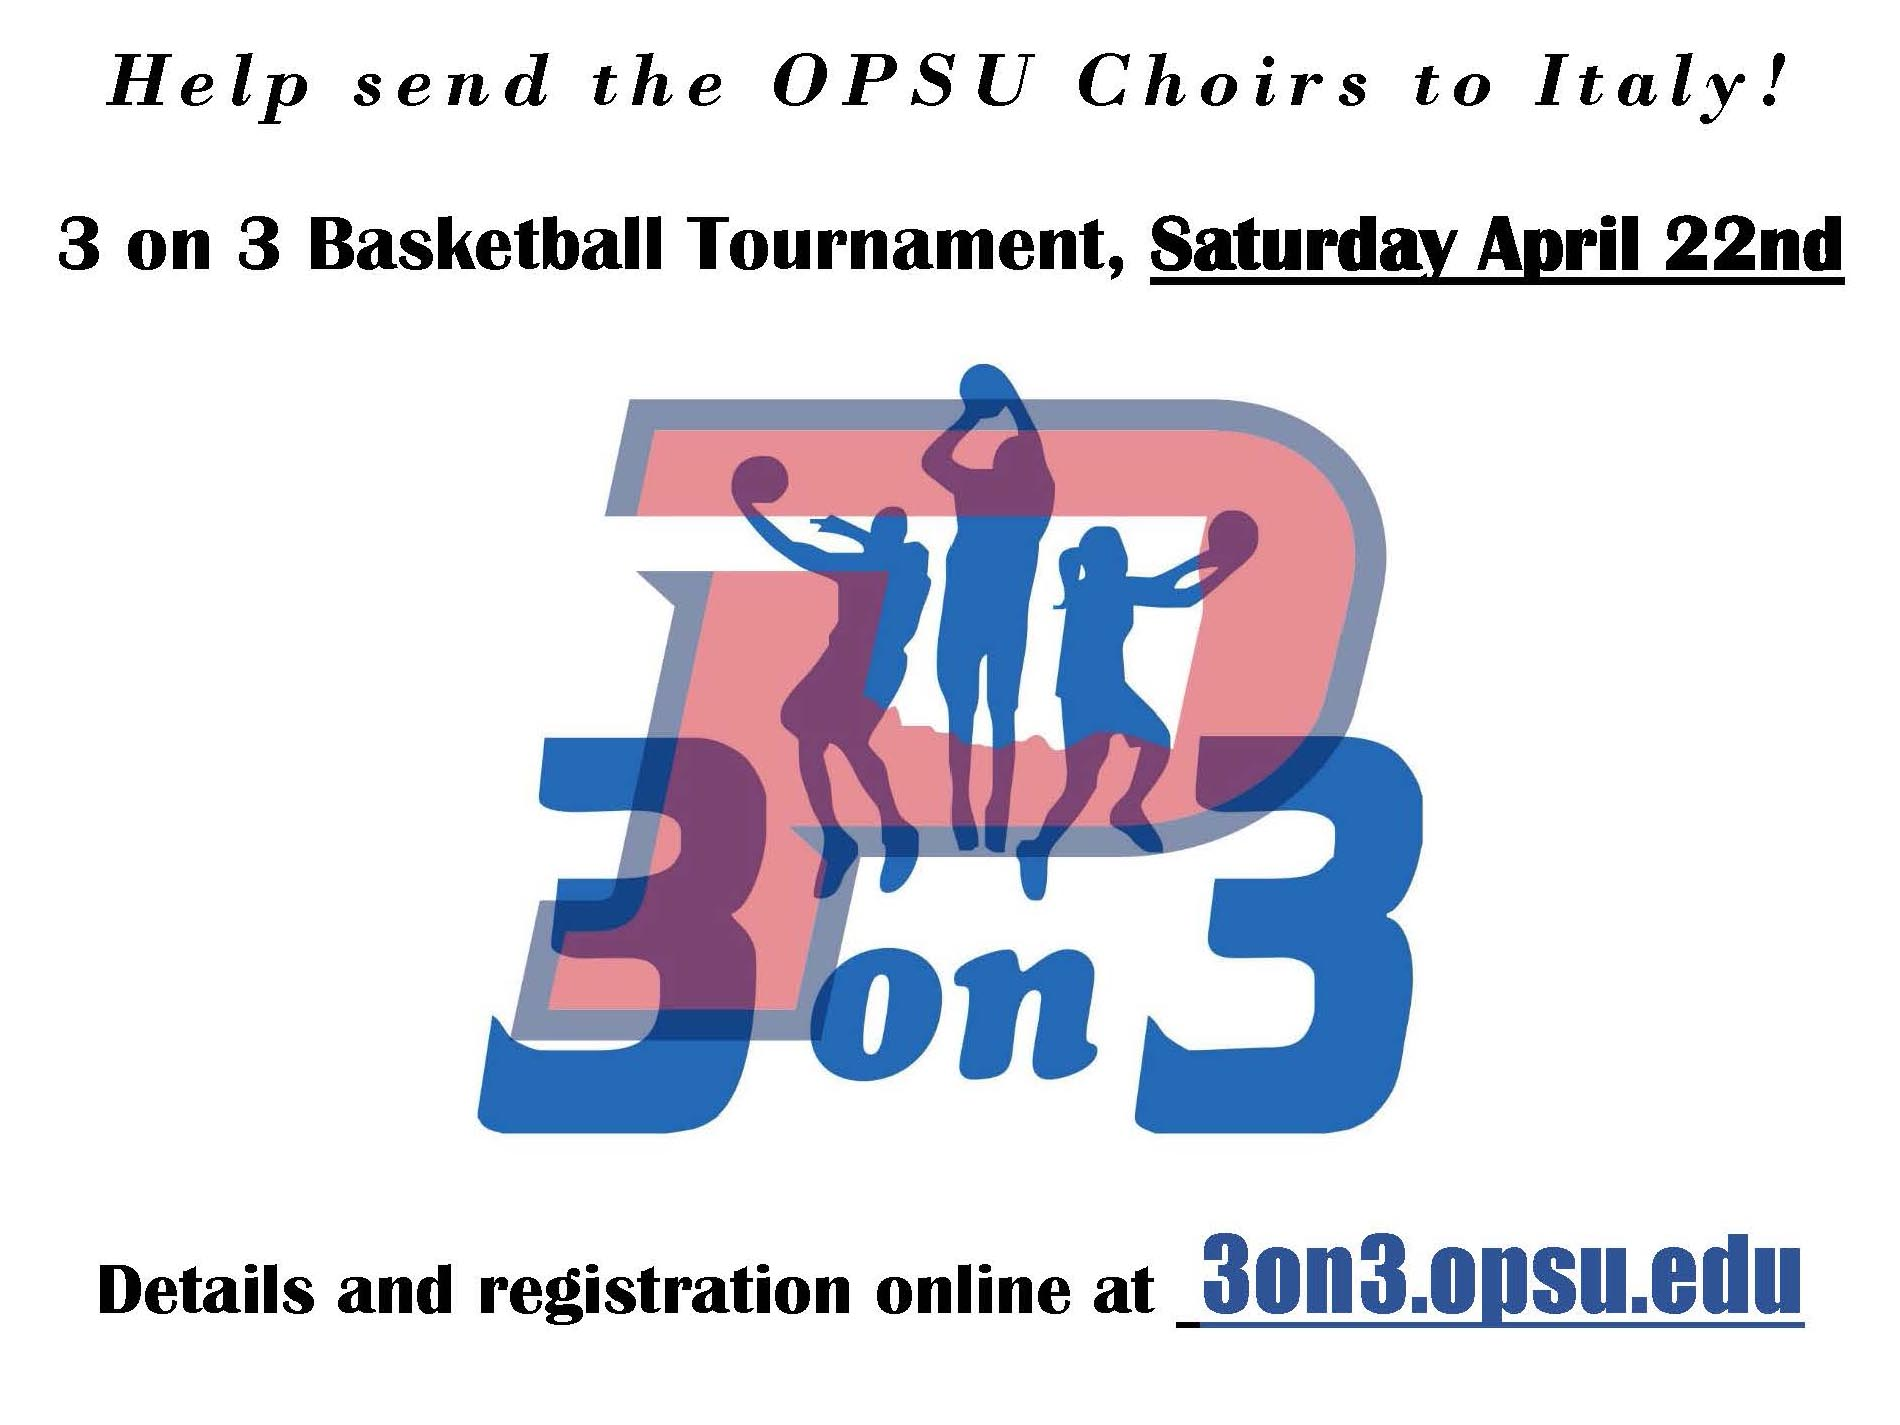 The Panhandle State Choir is hosting a 3-on-3 basketball tournament on Friday, April 21 and Saturday, April 22 at the Oklahoma Panhandle State University Noble Center.